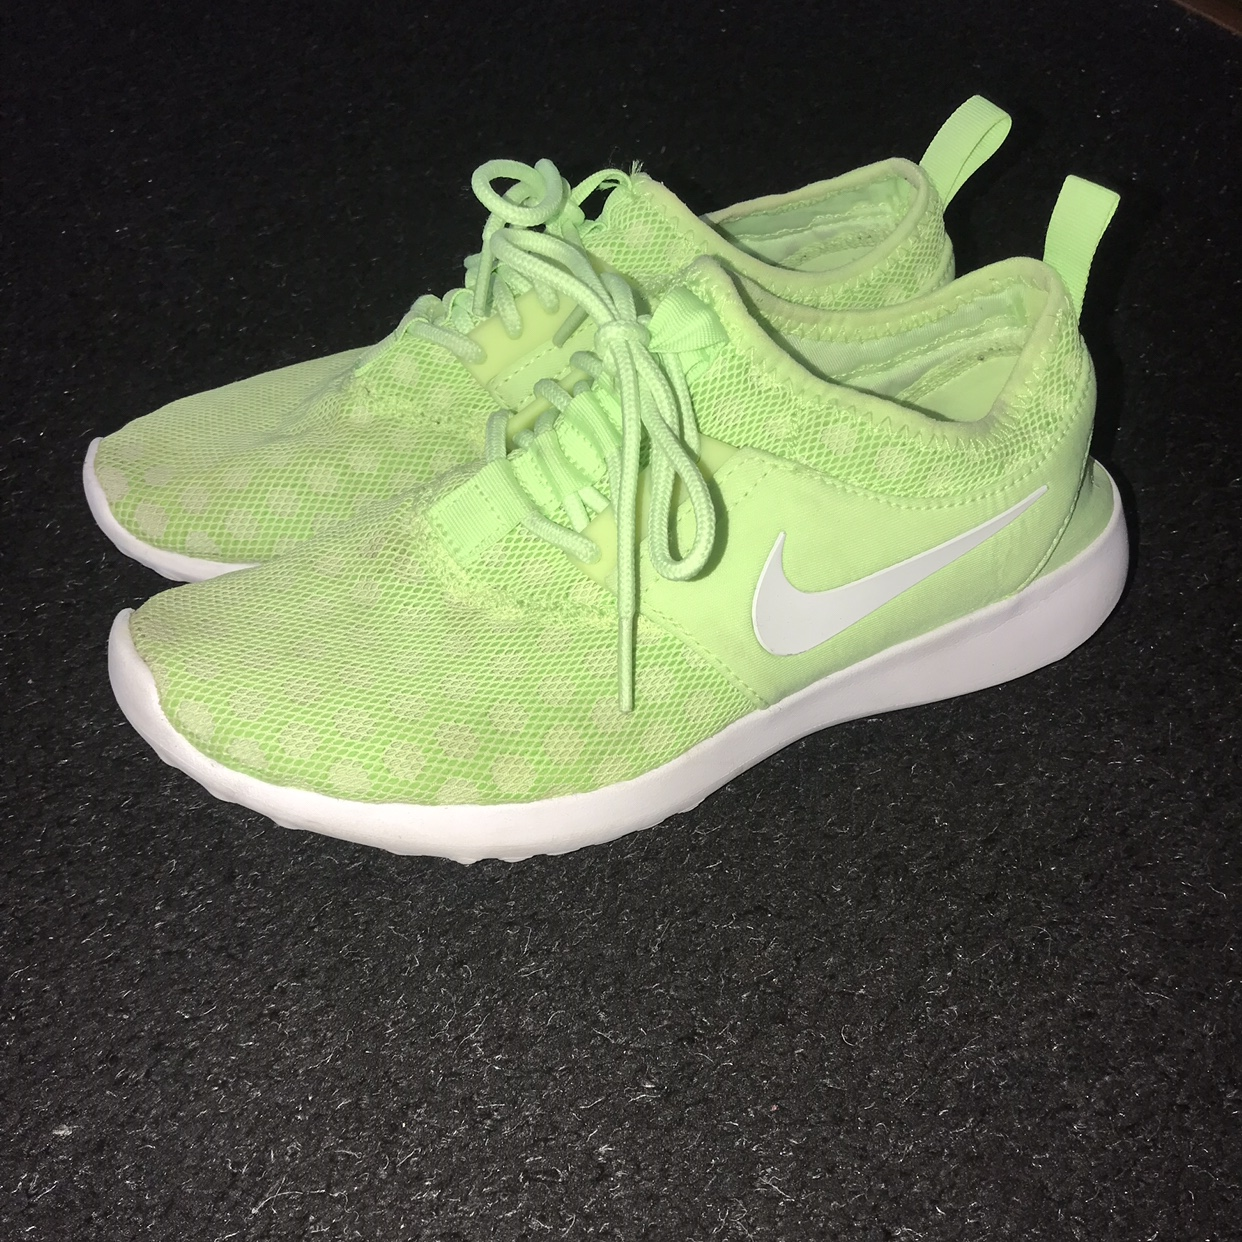 Nike Womens Lime Green Trainers Size 5